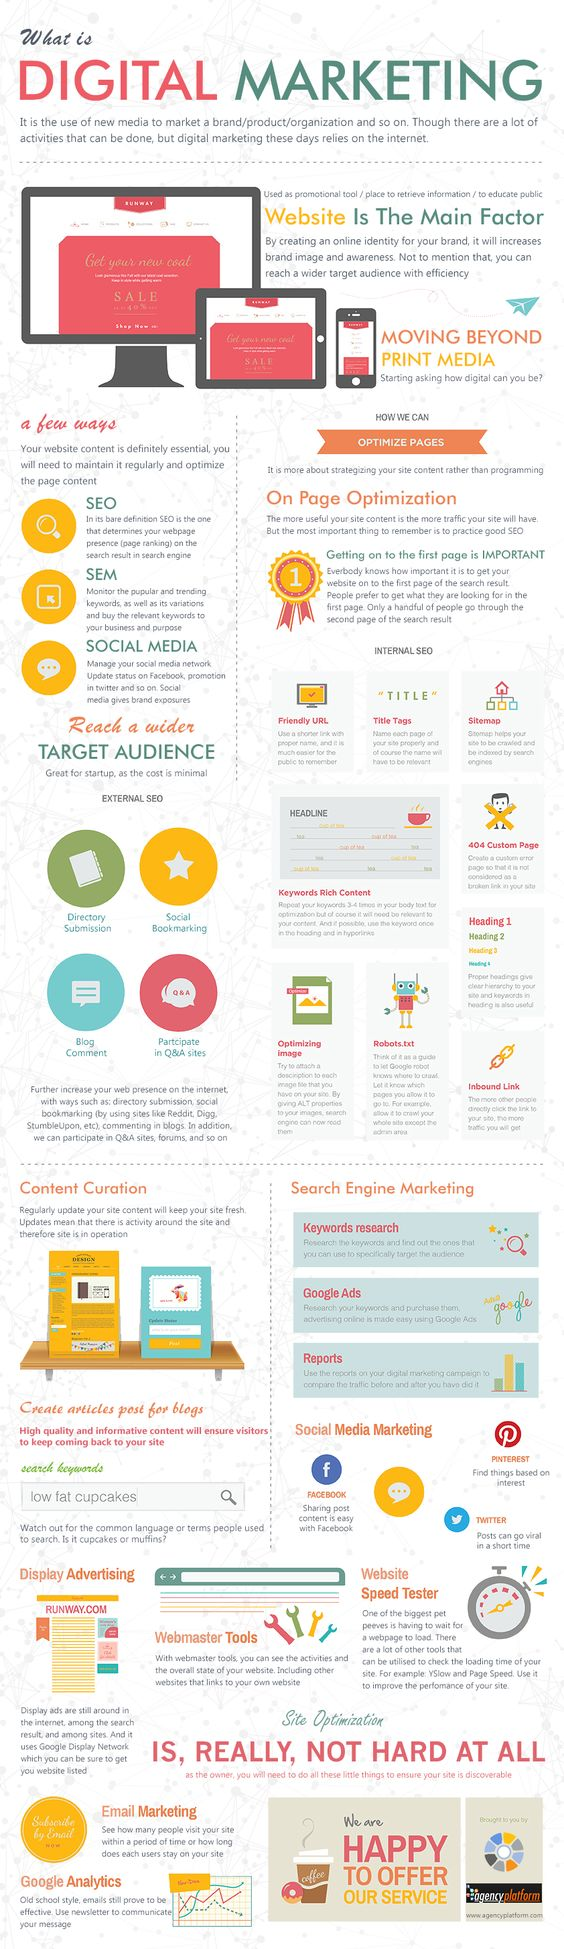 Image of an infographic for digital marketing